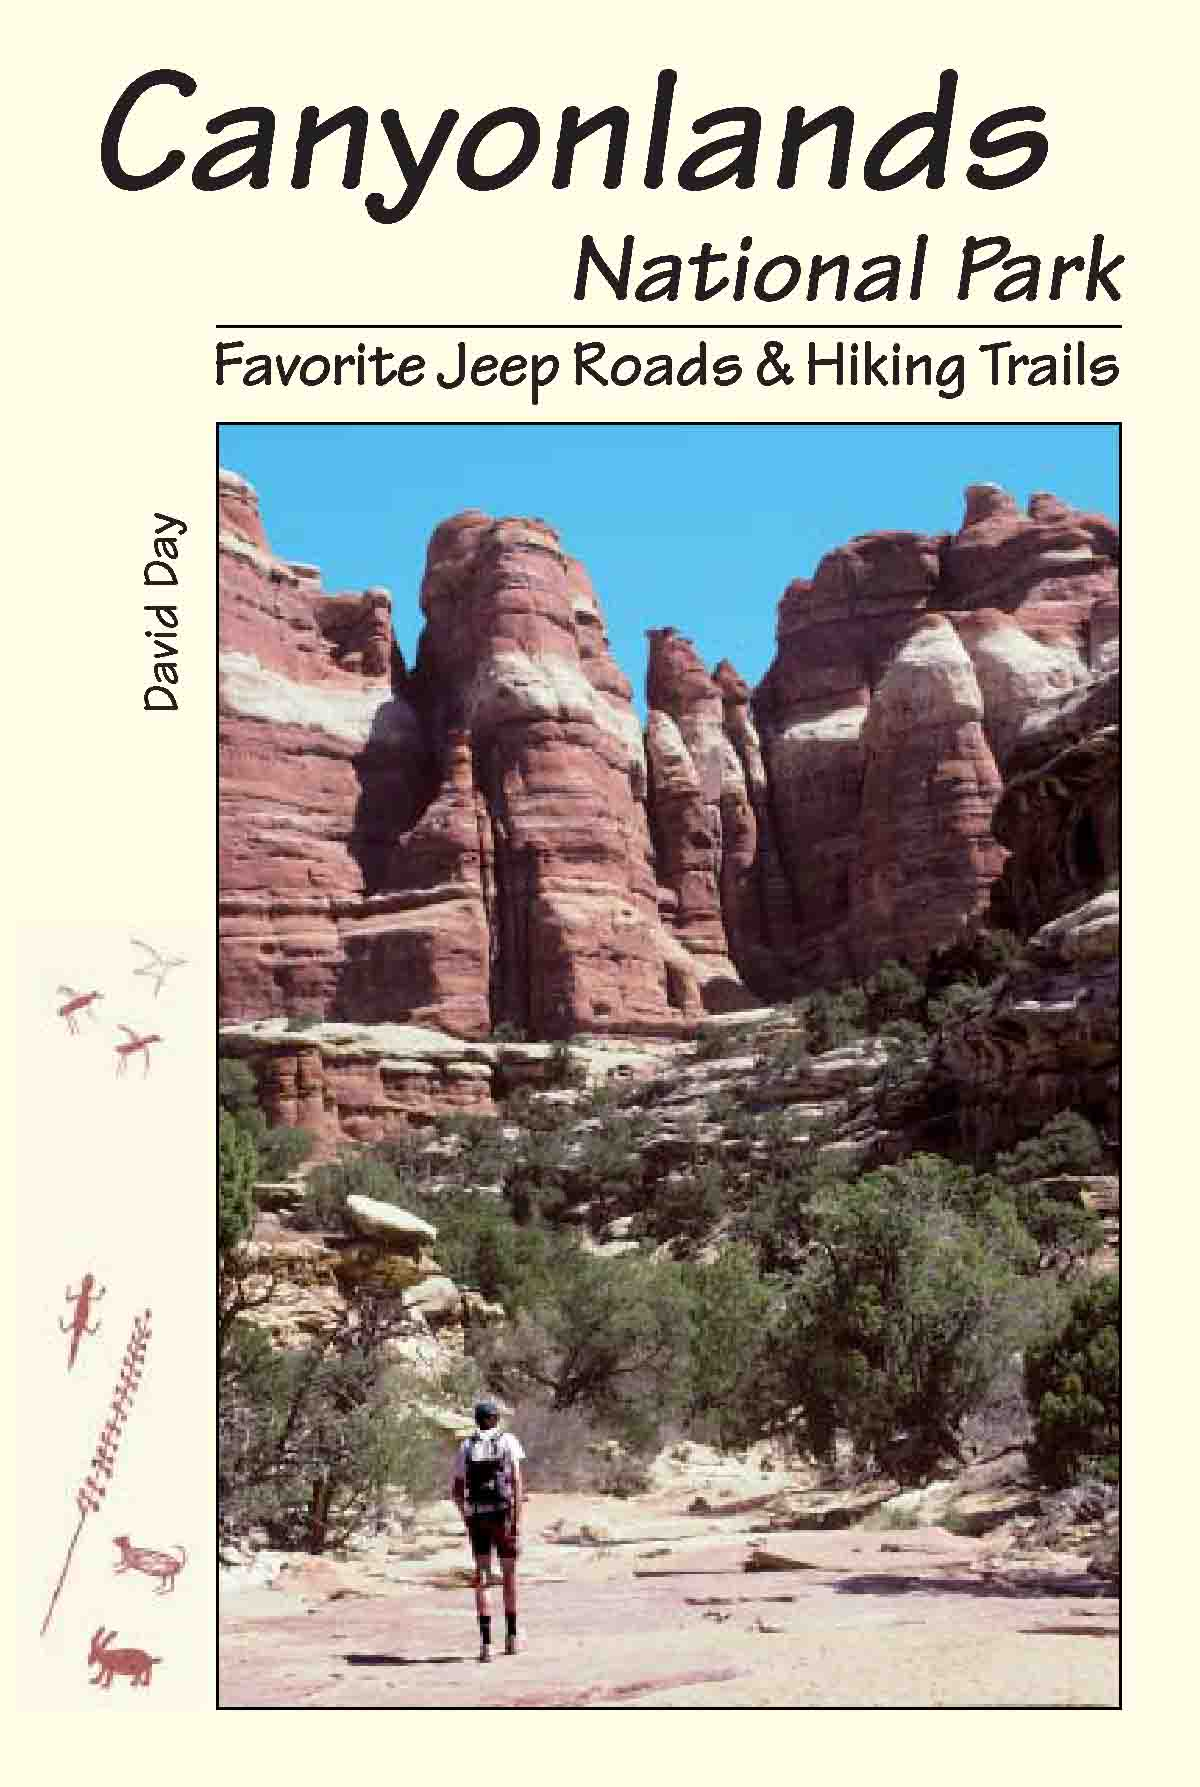 Canyonlands National Park Favorite Jeep Roads and Hiking Trails